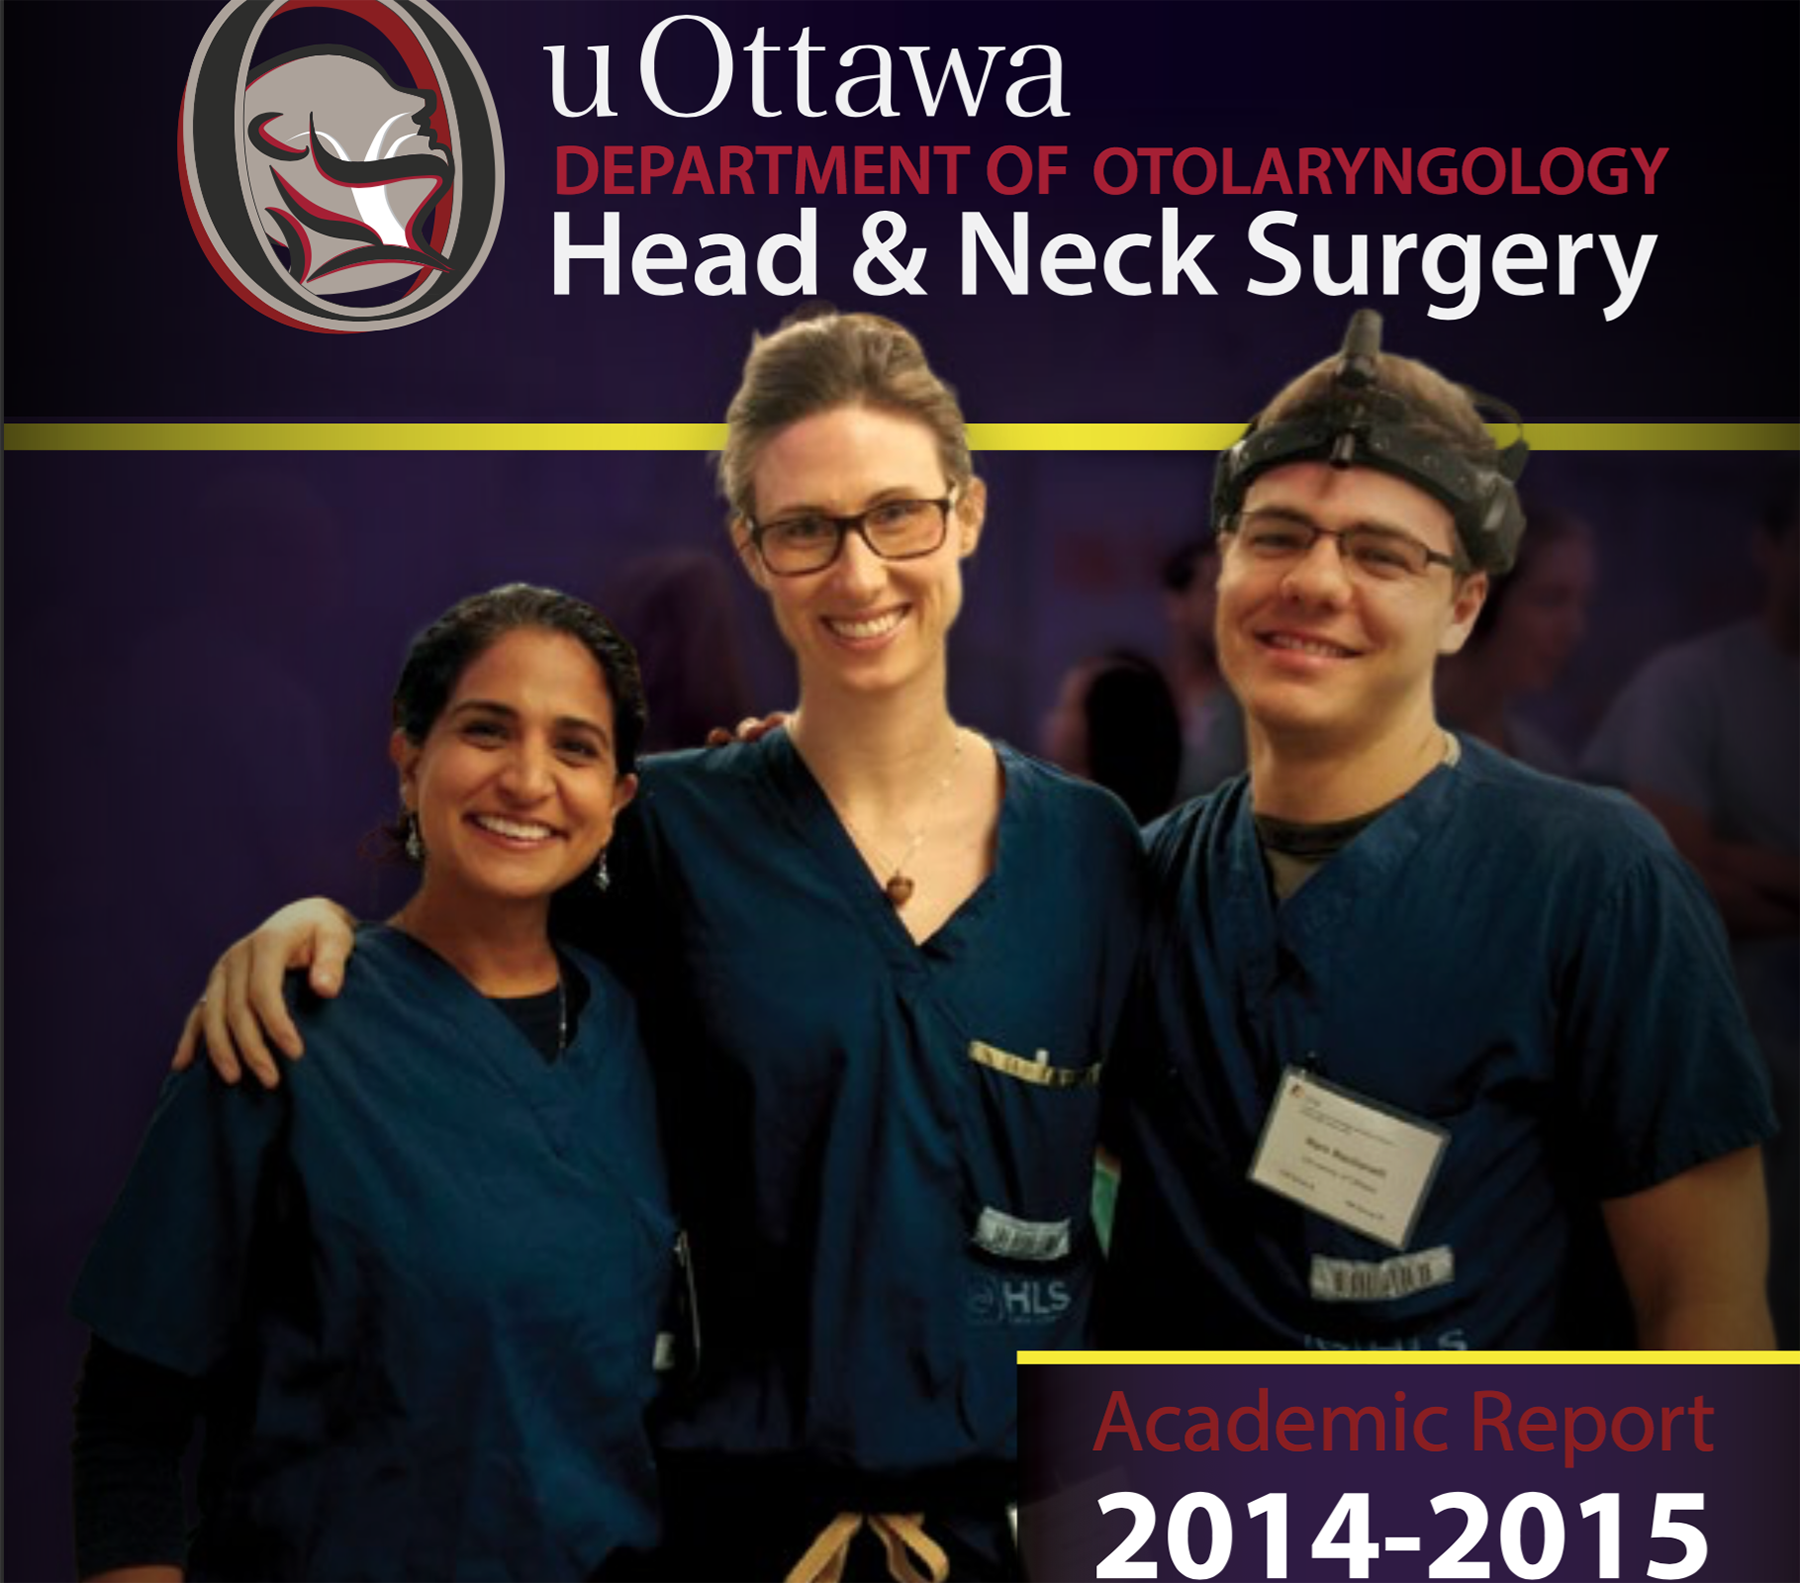 Otolaryngology Academic Report 2014-2015